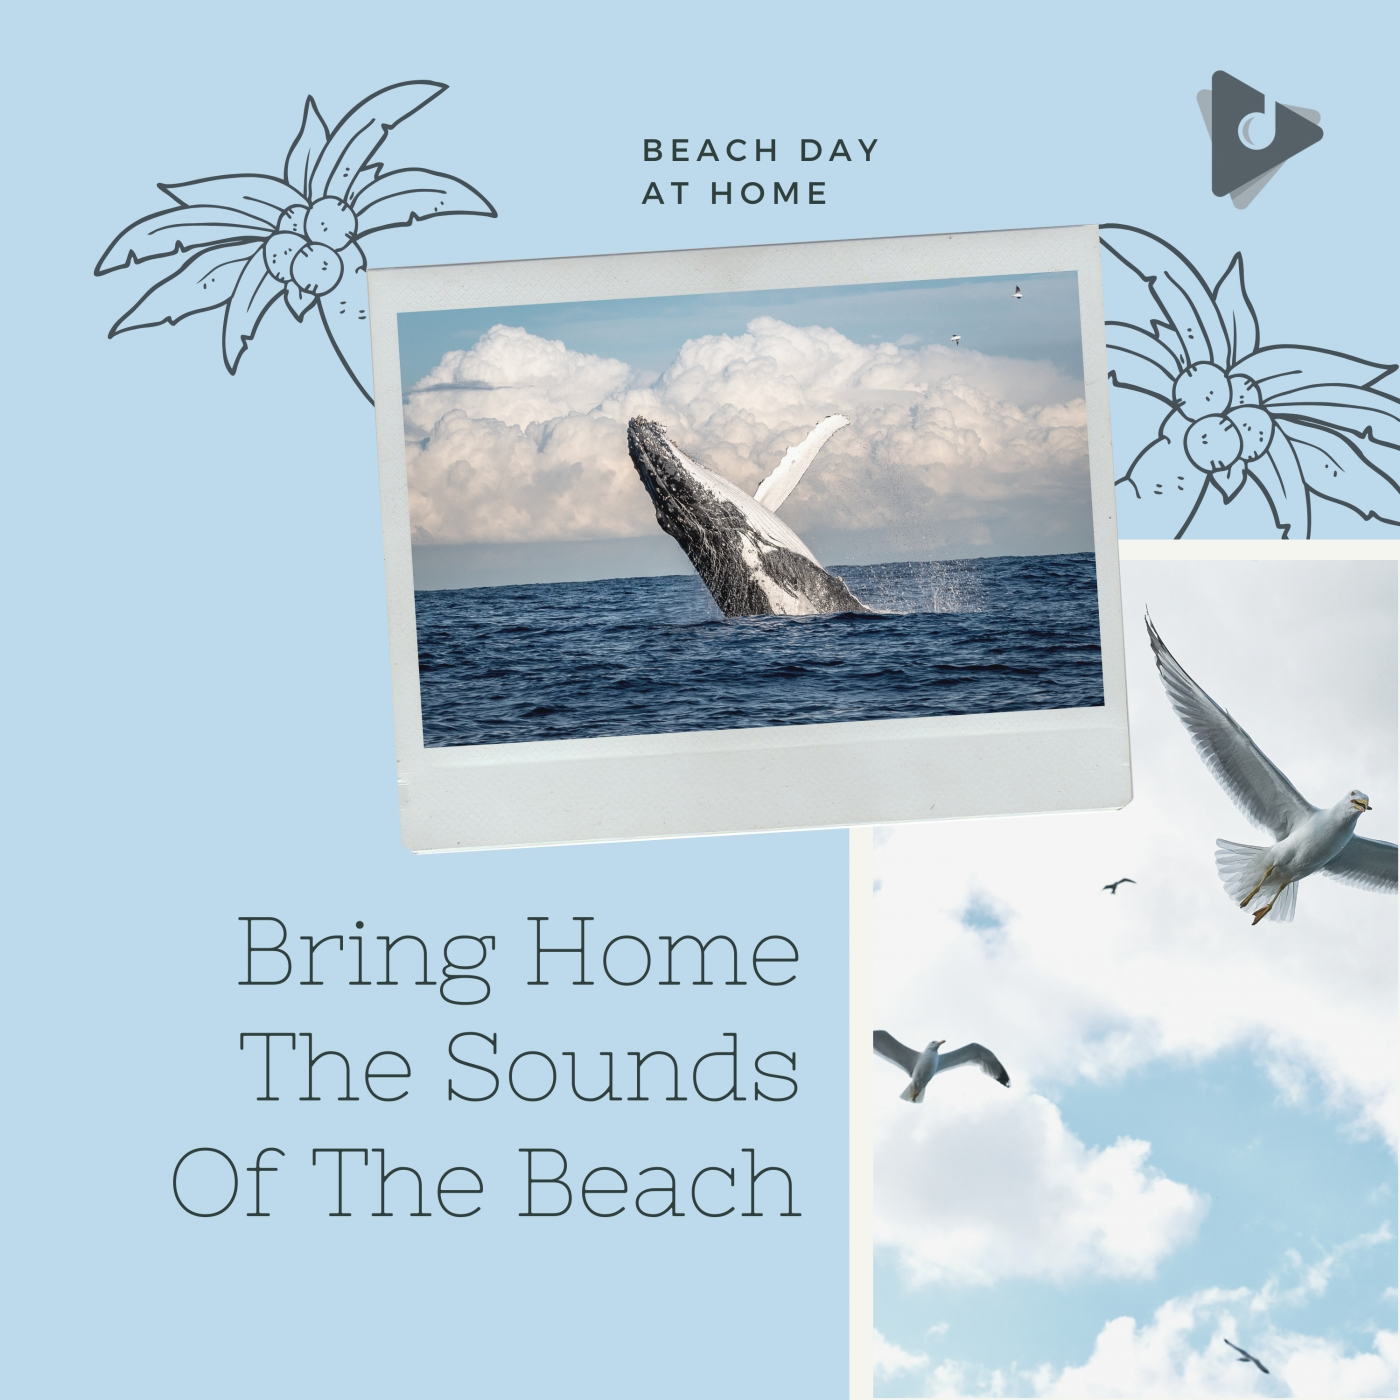 Bring Home The Sounds Of The Beach